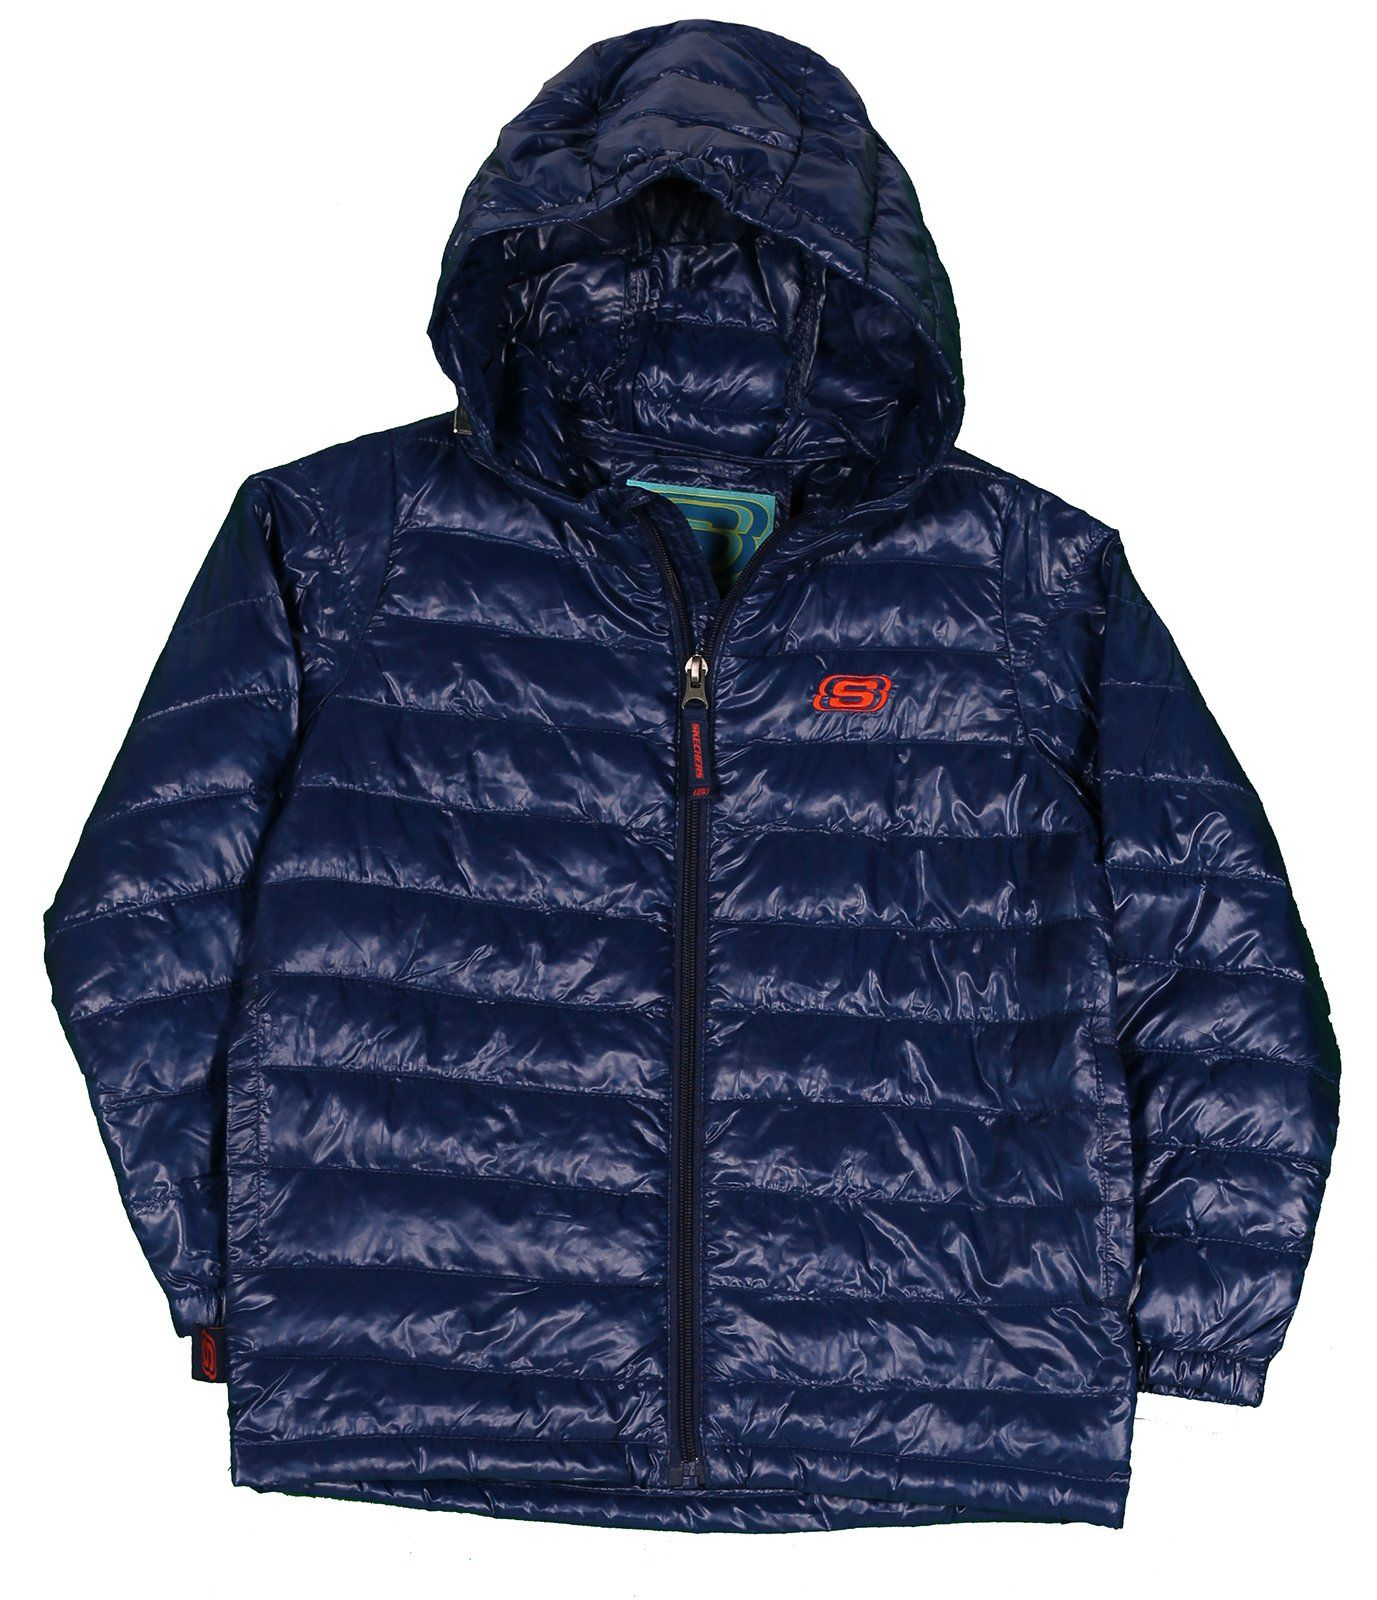 Skechers Little Boys Lightweight Hooded Puffer Jacket With Down Blend Fill Navy 5 6 Hooded Quilted Puffer Jack Jackets Quilted Puffer Jacket Puffer Jackets [ 1600 x 1377 Pixel ]